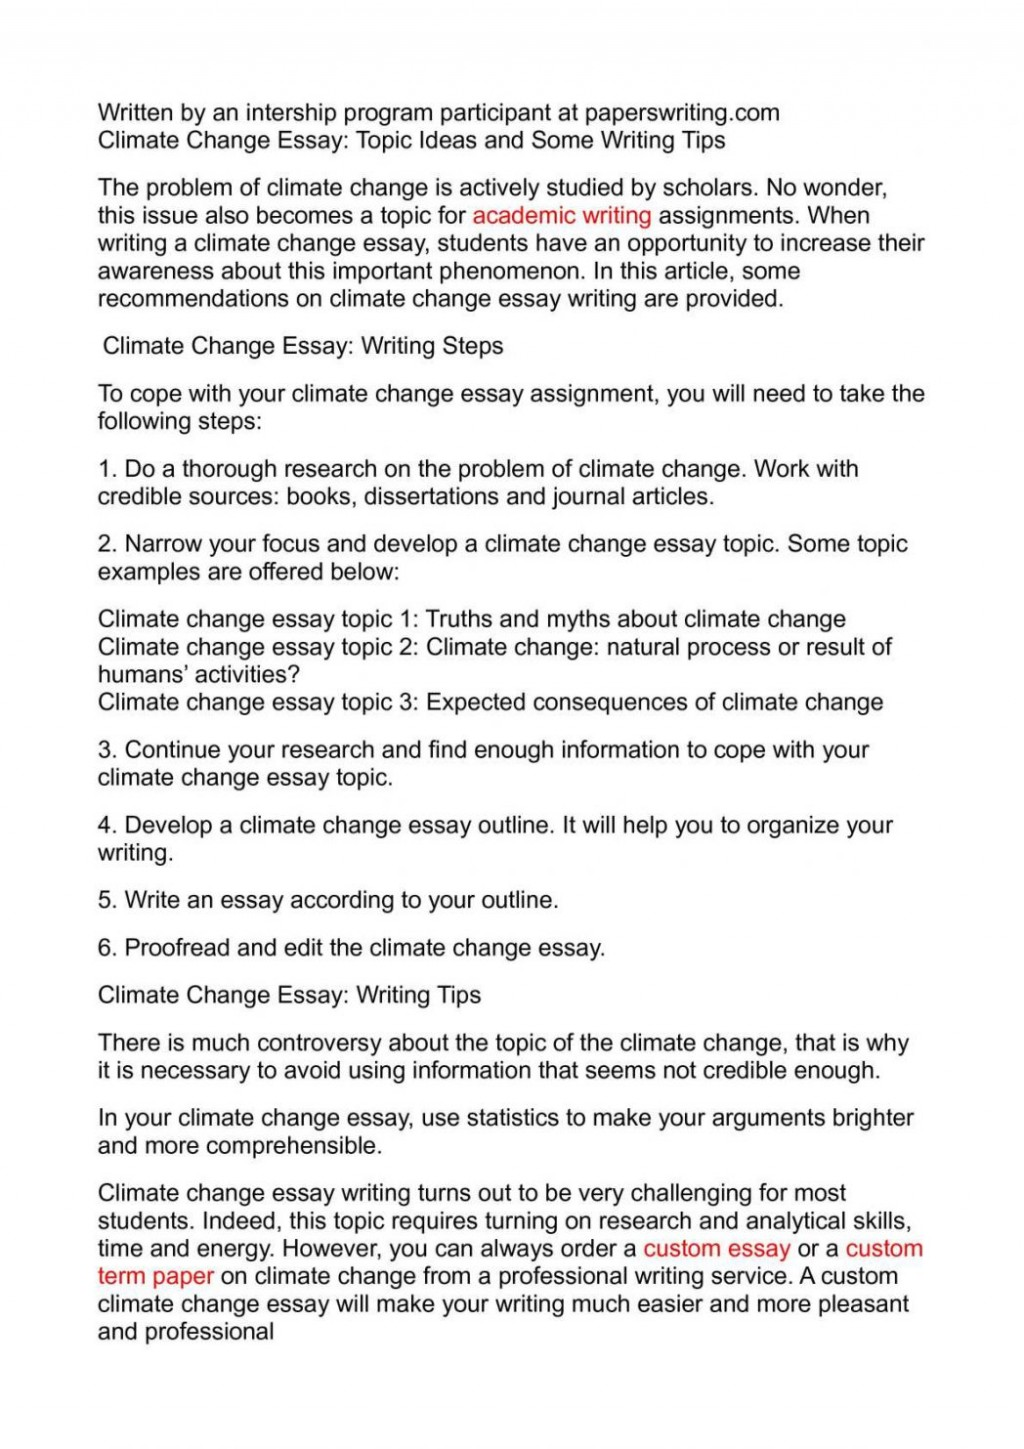 004 Global Climate Change Essay Warming And How To Write An Abo Argumentative On Persuasive Study Mode About Good Paper 1048x1483 Awesome In English 150 Words Thesis Statement Ideas Large